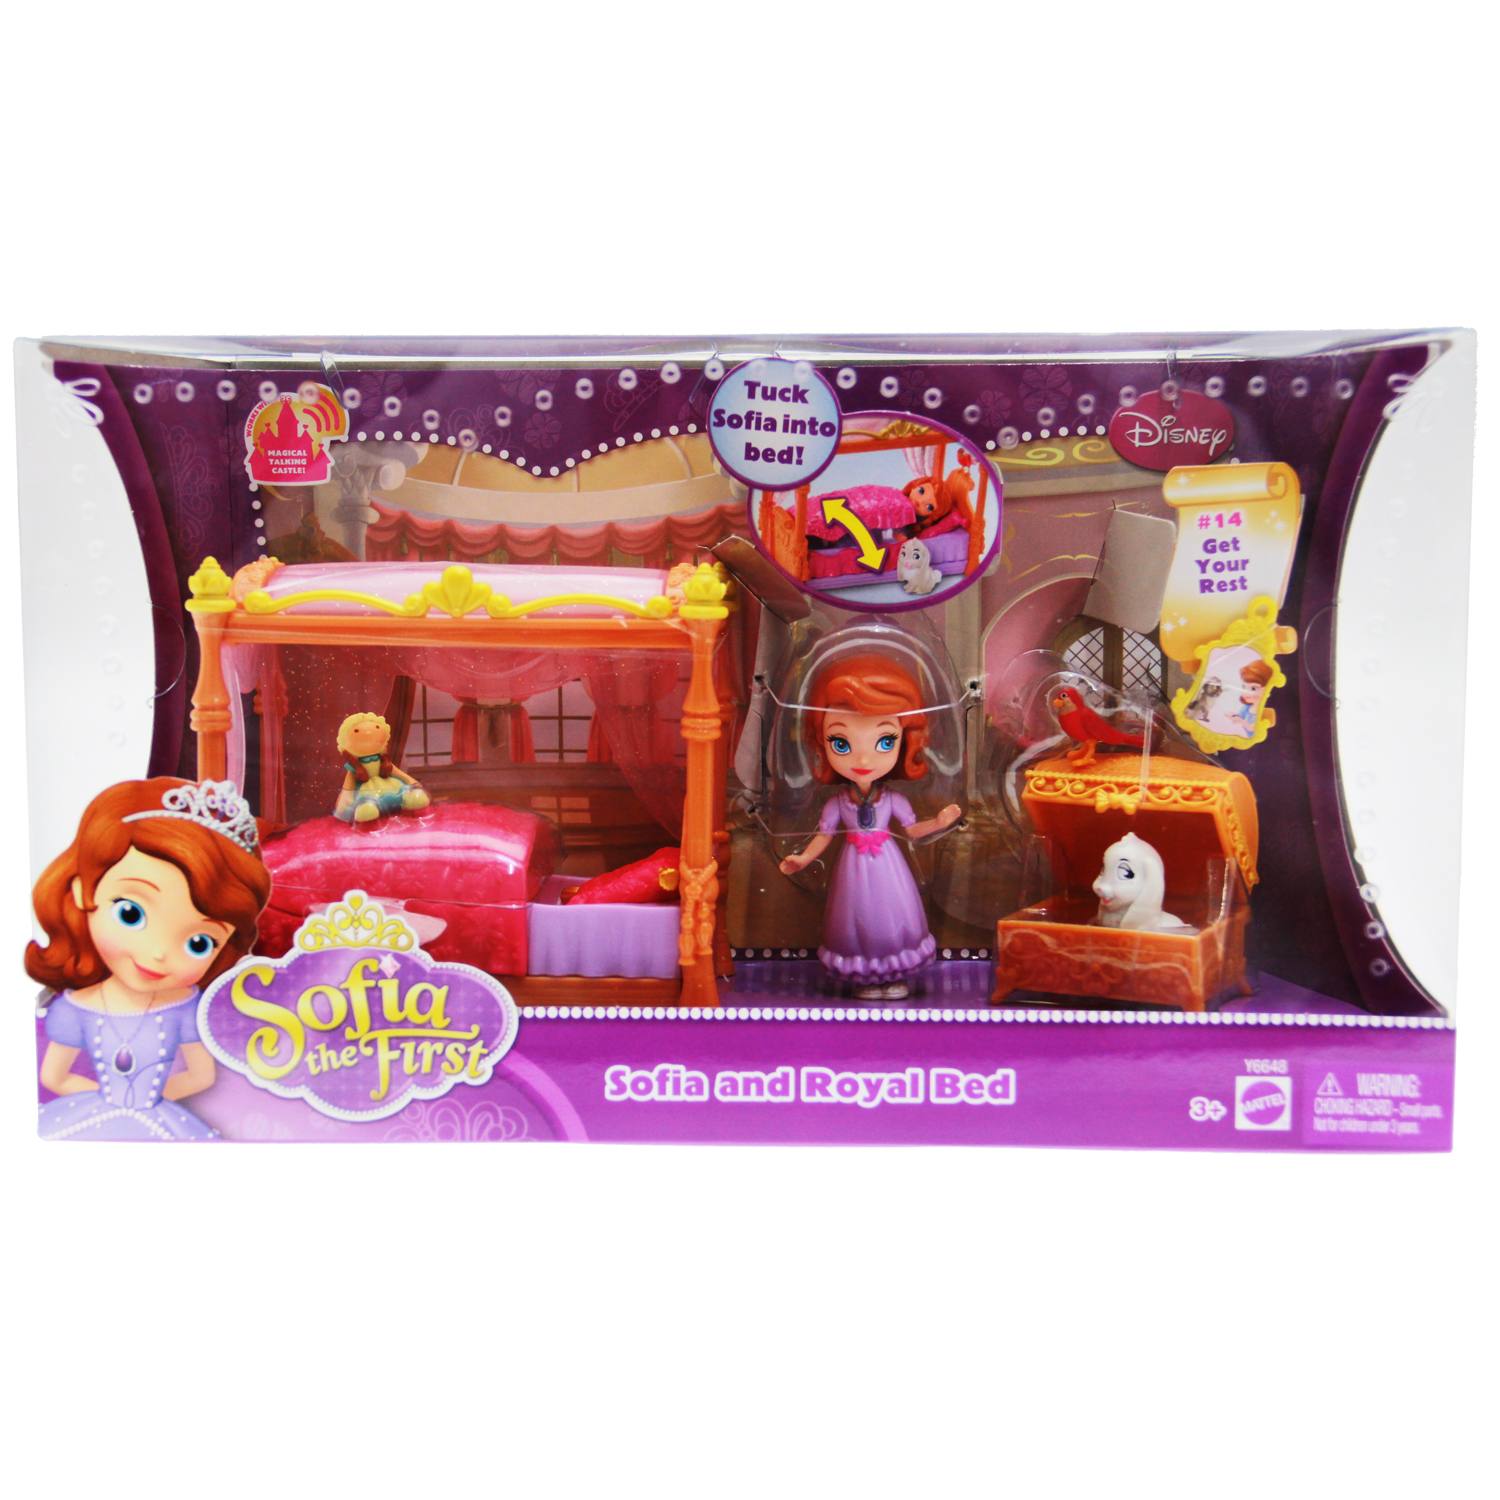 Exceptionnel Sofia The First Toys   Royal Bed Playset At ToyStop